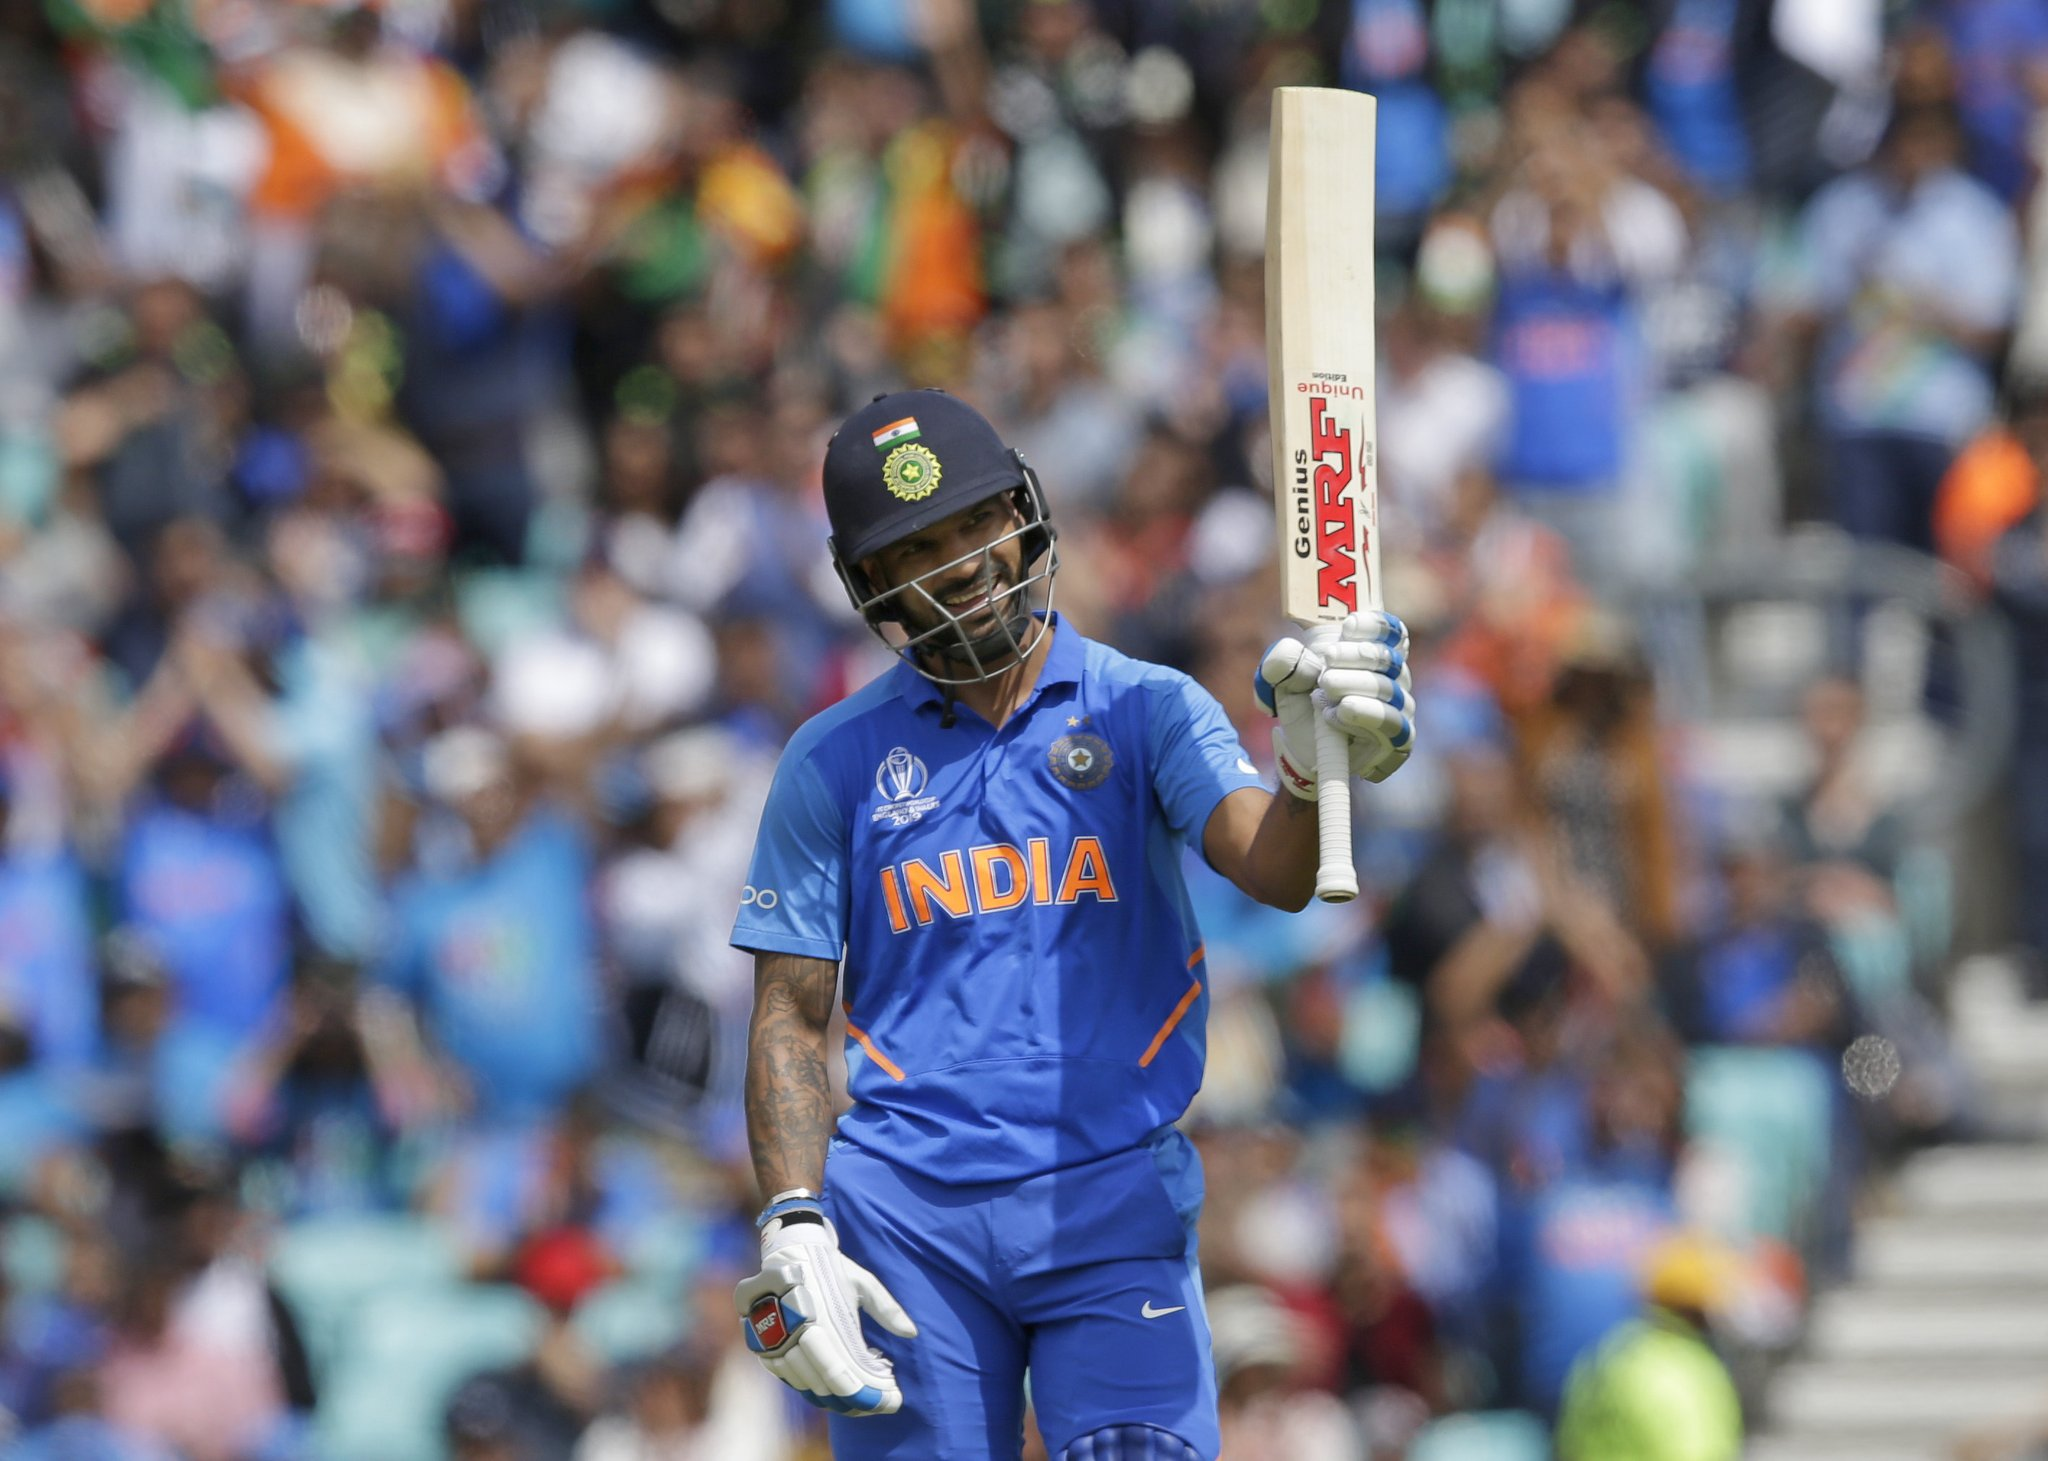 ICC World Cup 2019: Shikhar Dhawan's loss won't derail India's campaign, opines Mike Hussey